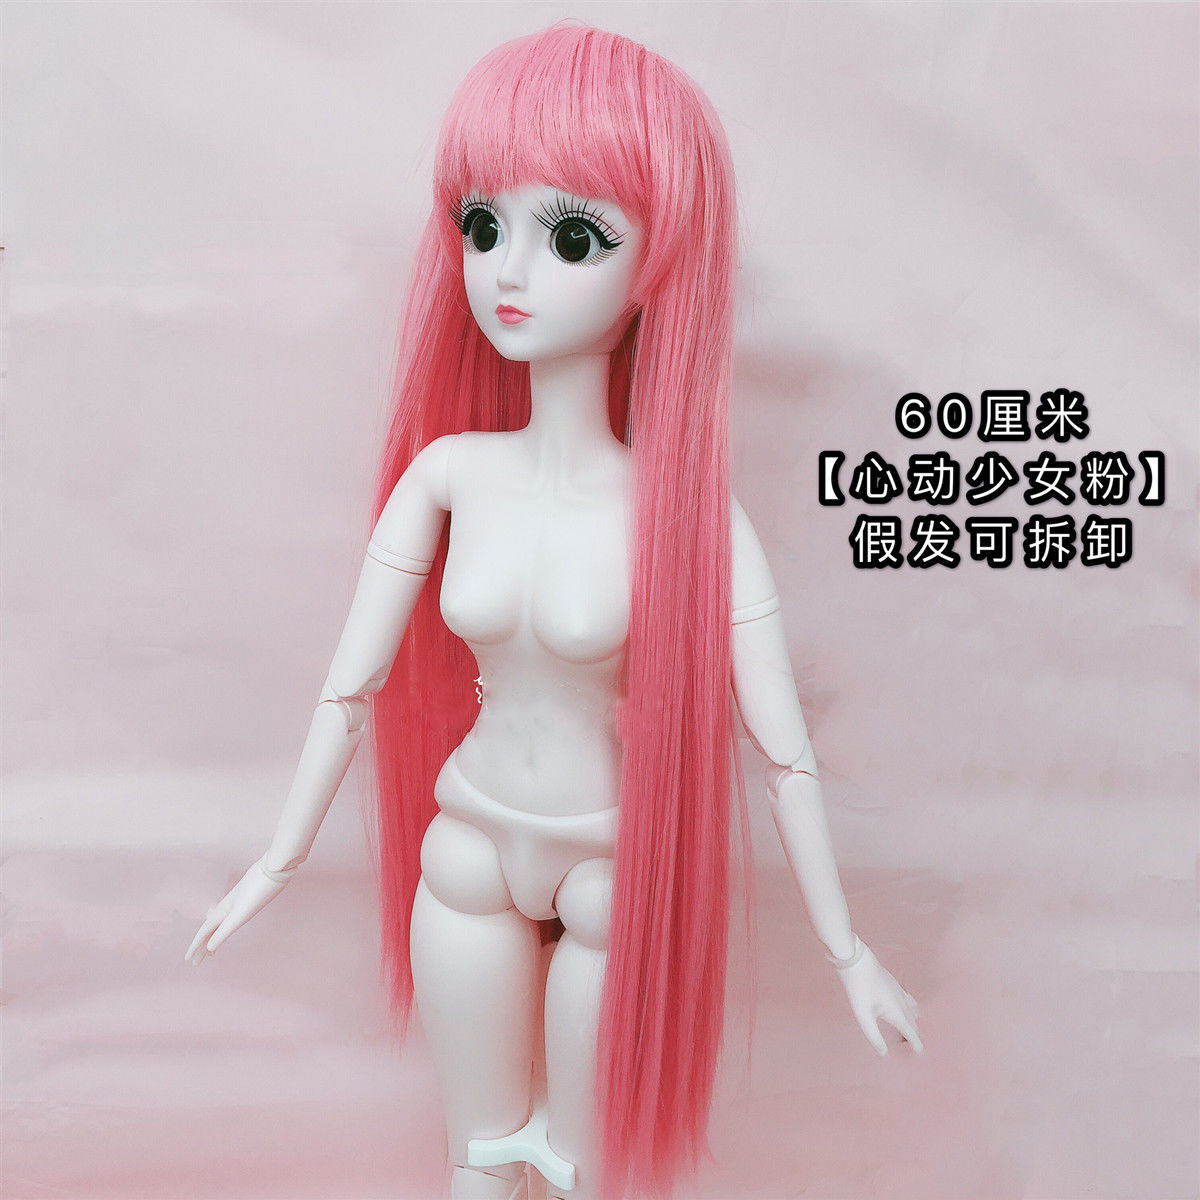 60 cm beautiful princess doll 1/3 BJD doll 20 joint beautiful blond princess hair detachable gift for girl Fashion Doll